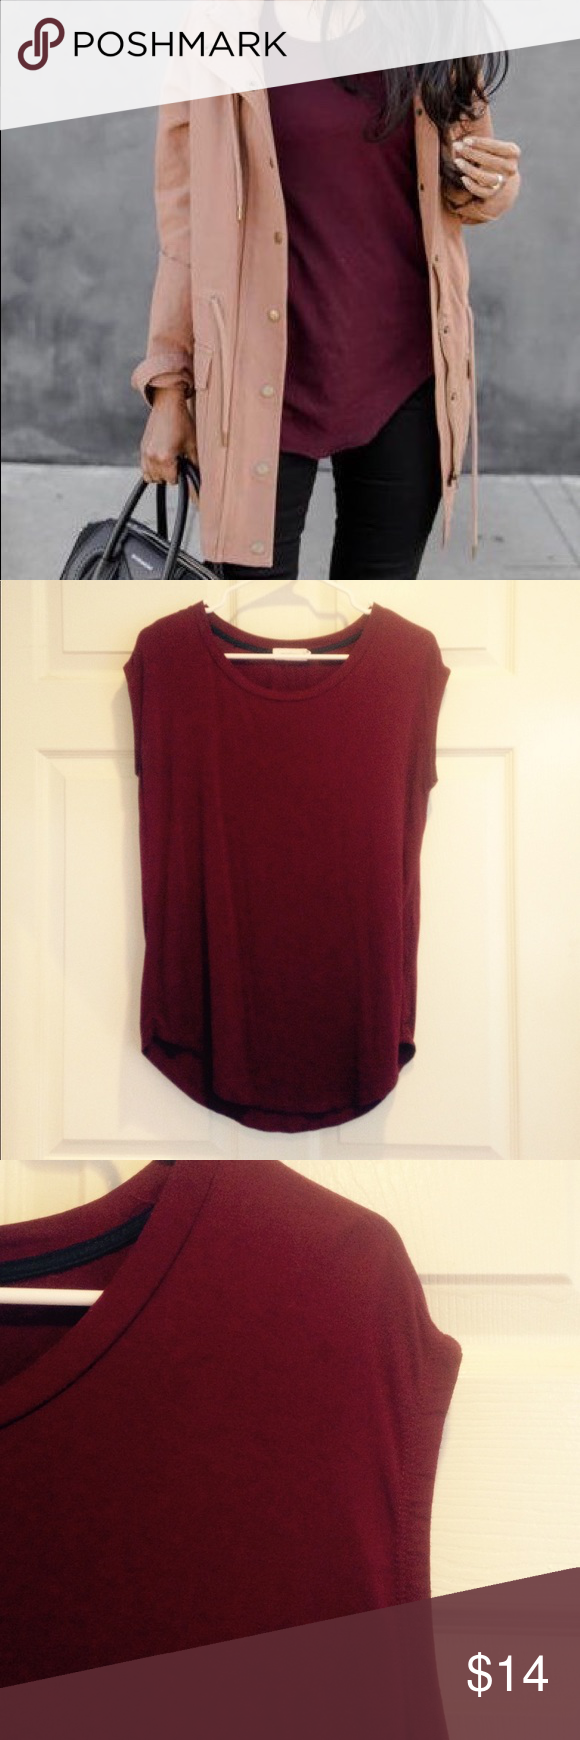 """Maroon Top This gorgeous shirt is perfect for fall! It has a loose, flowy fit that will flatter those skinny jeans and booties. Barely worn, and in almost new condition. Size Medium and fits true to size. Length is 26"""" in front, and 28"""" in back. If you have any questions, please feel free to ask me! Marlow Tops Tees - Short Sleeve"""